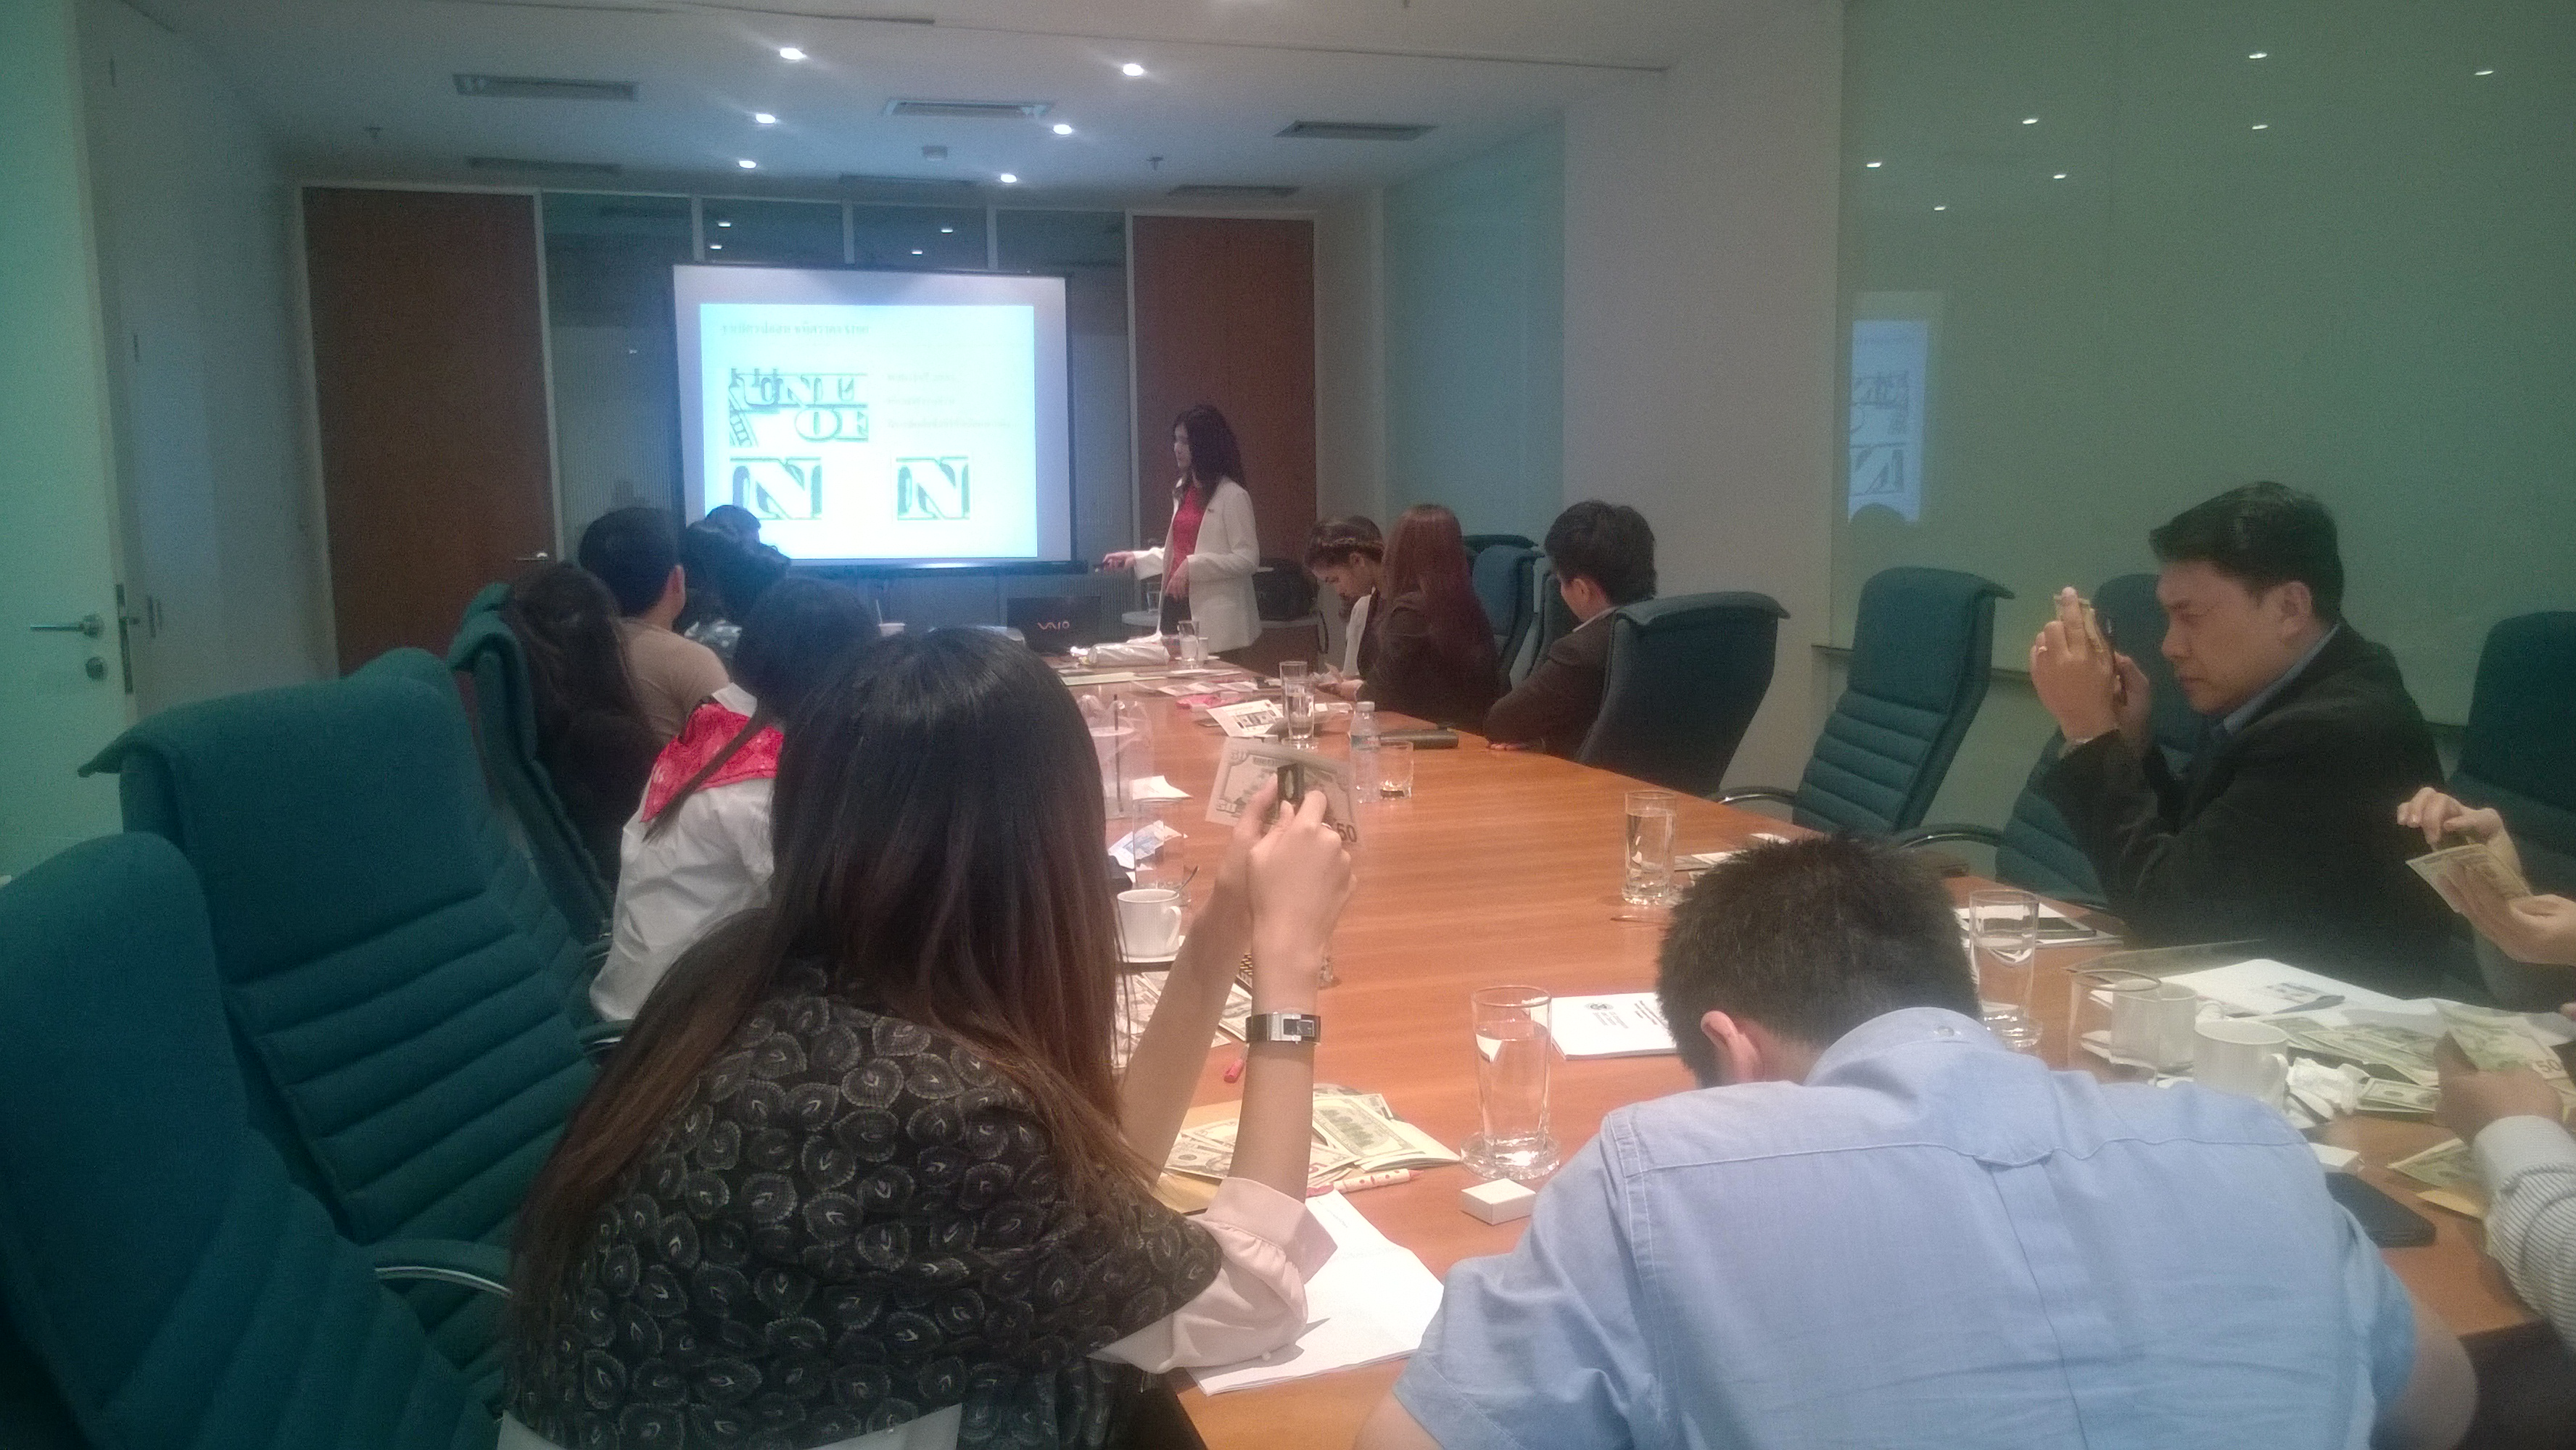 fraudulent document detection training With fraudulent document detection